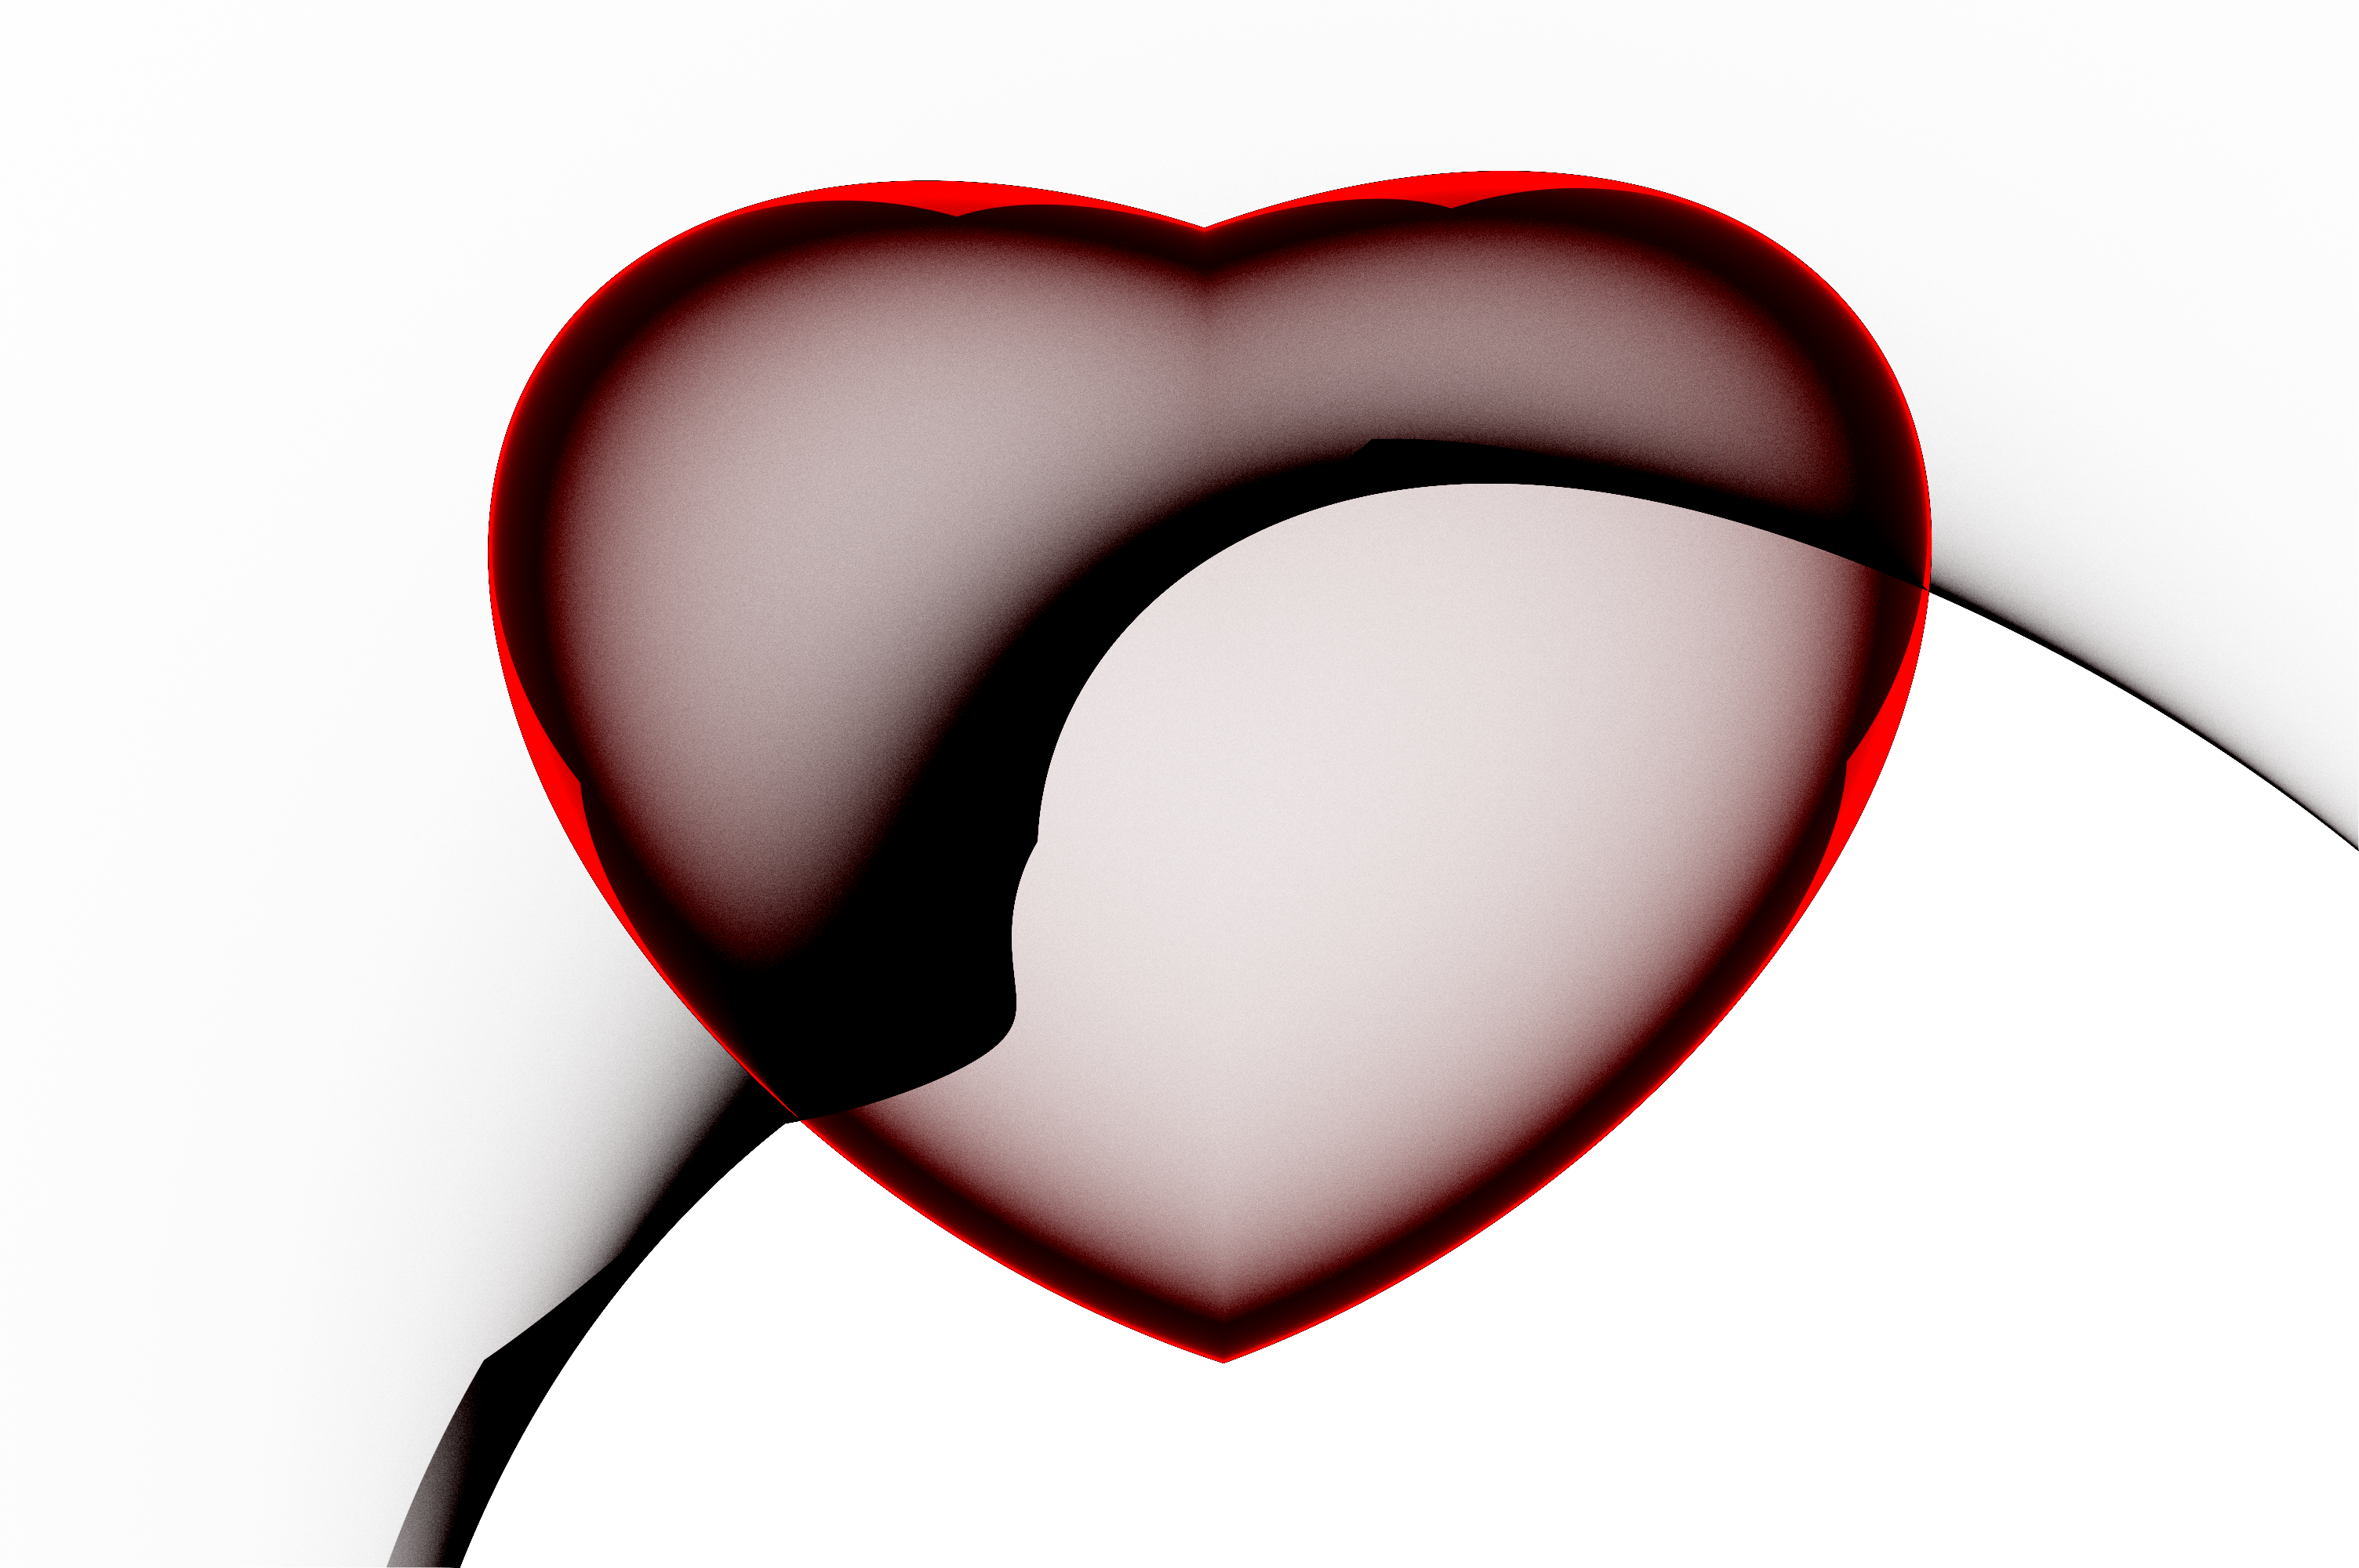 heartabstract2